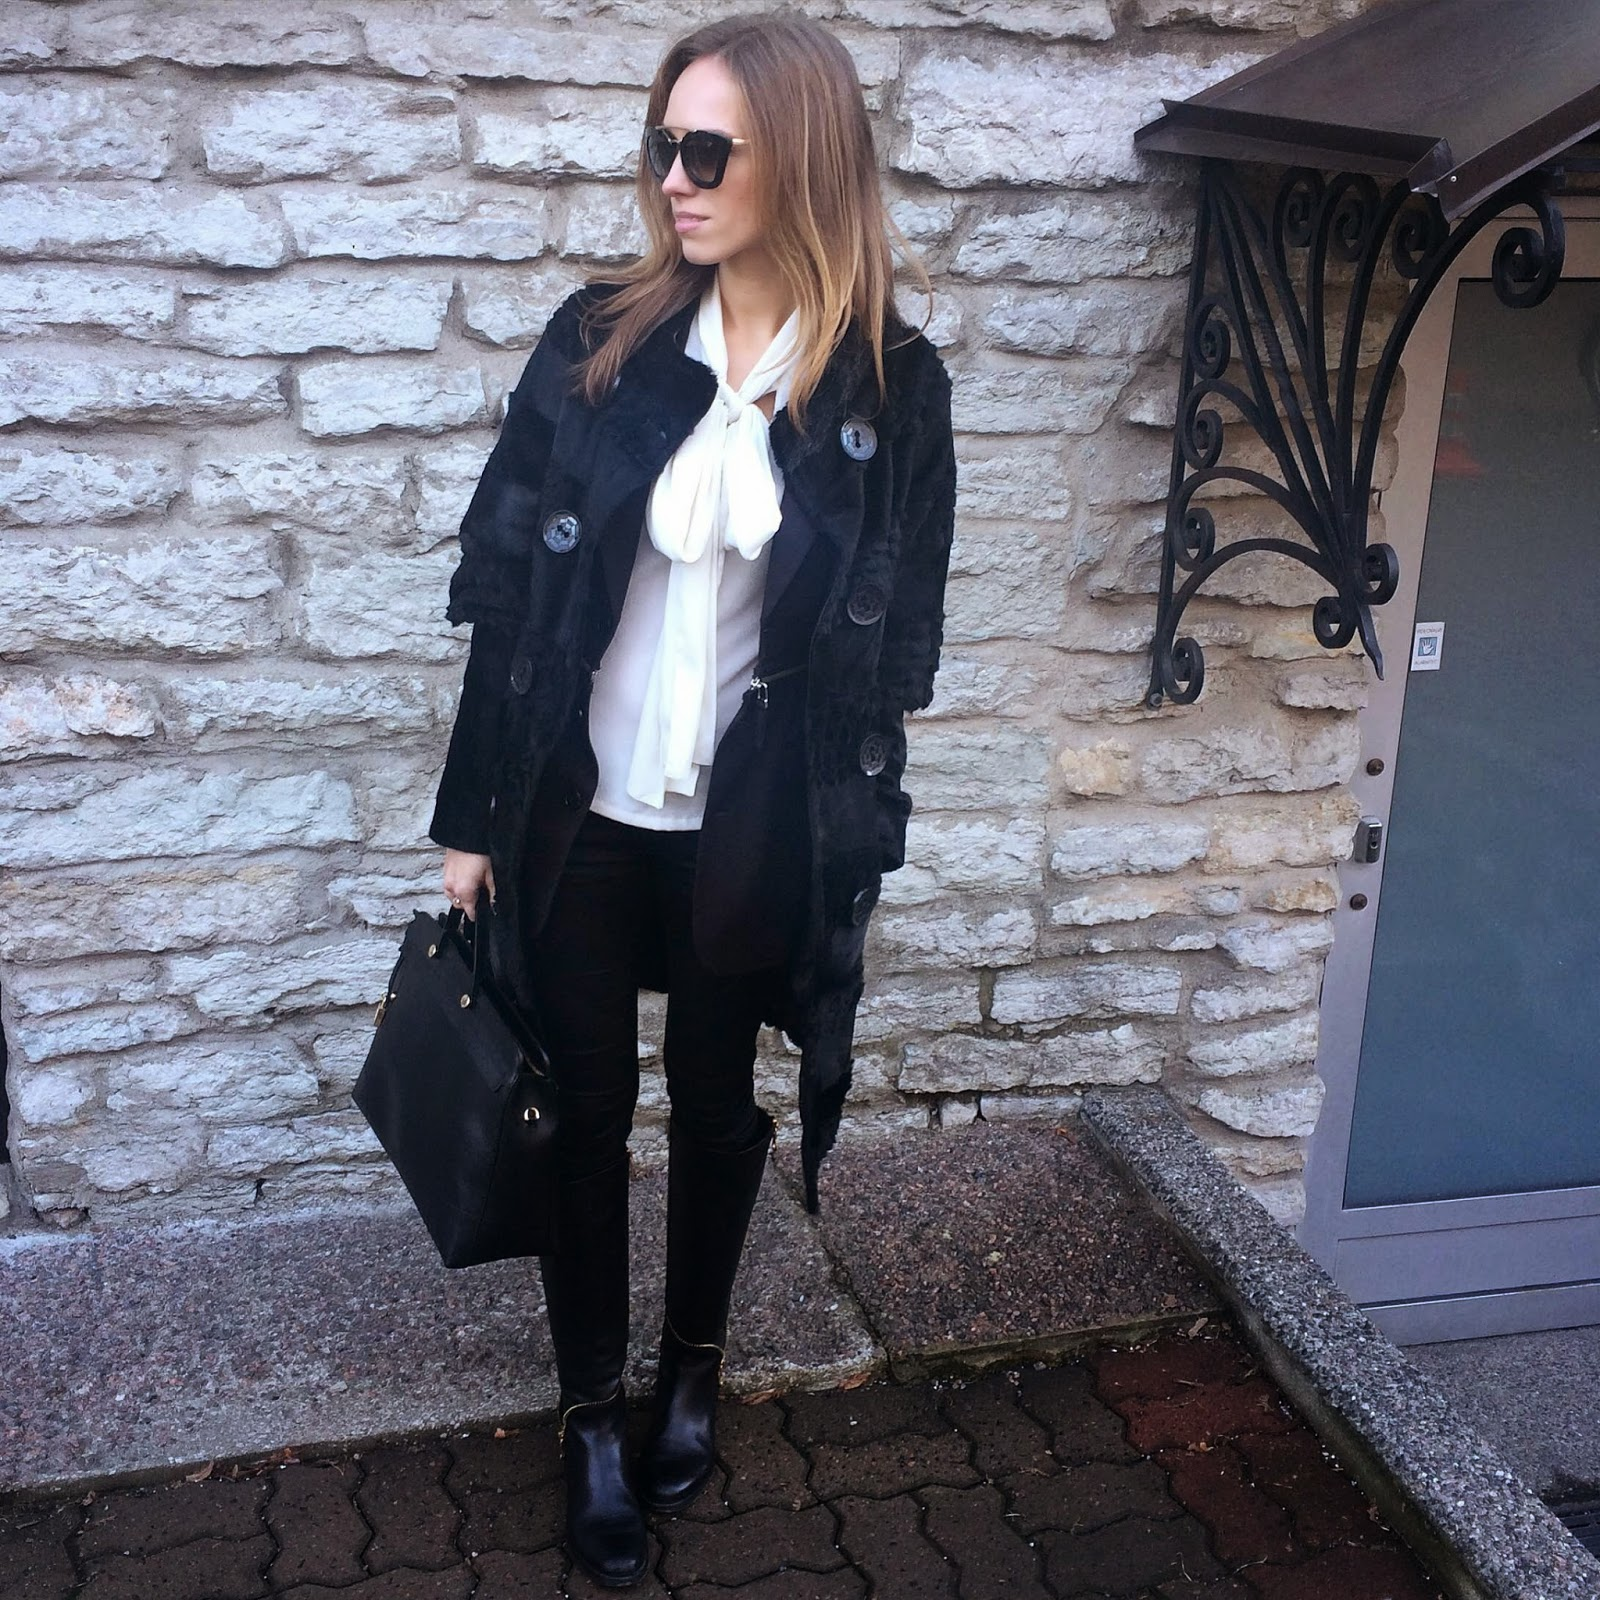 black-fur-coat-white-bow-blouse-black-jeans-knee-high-boots-winter-outfit